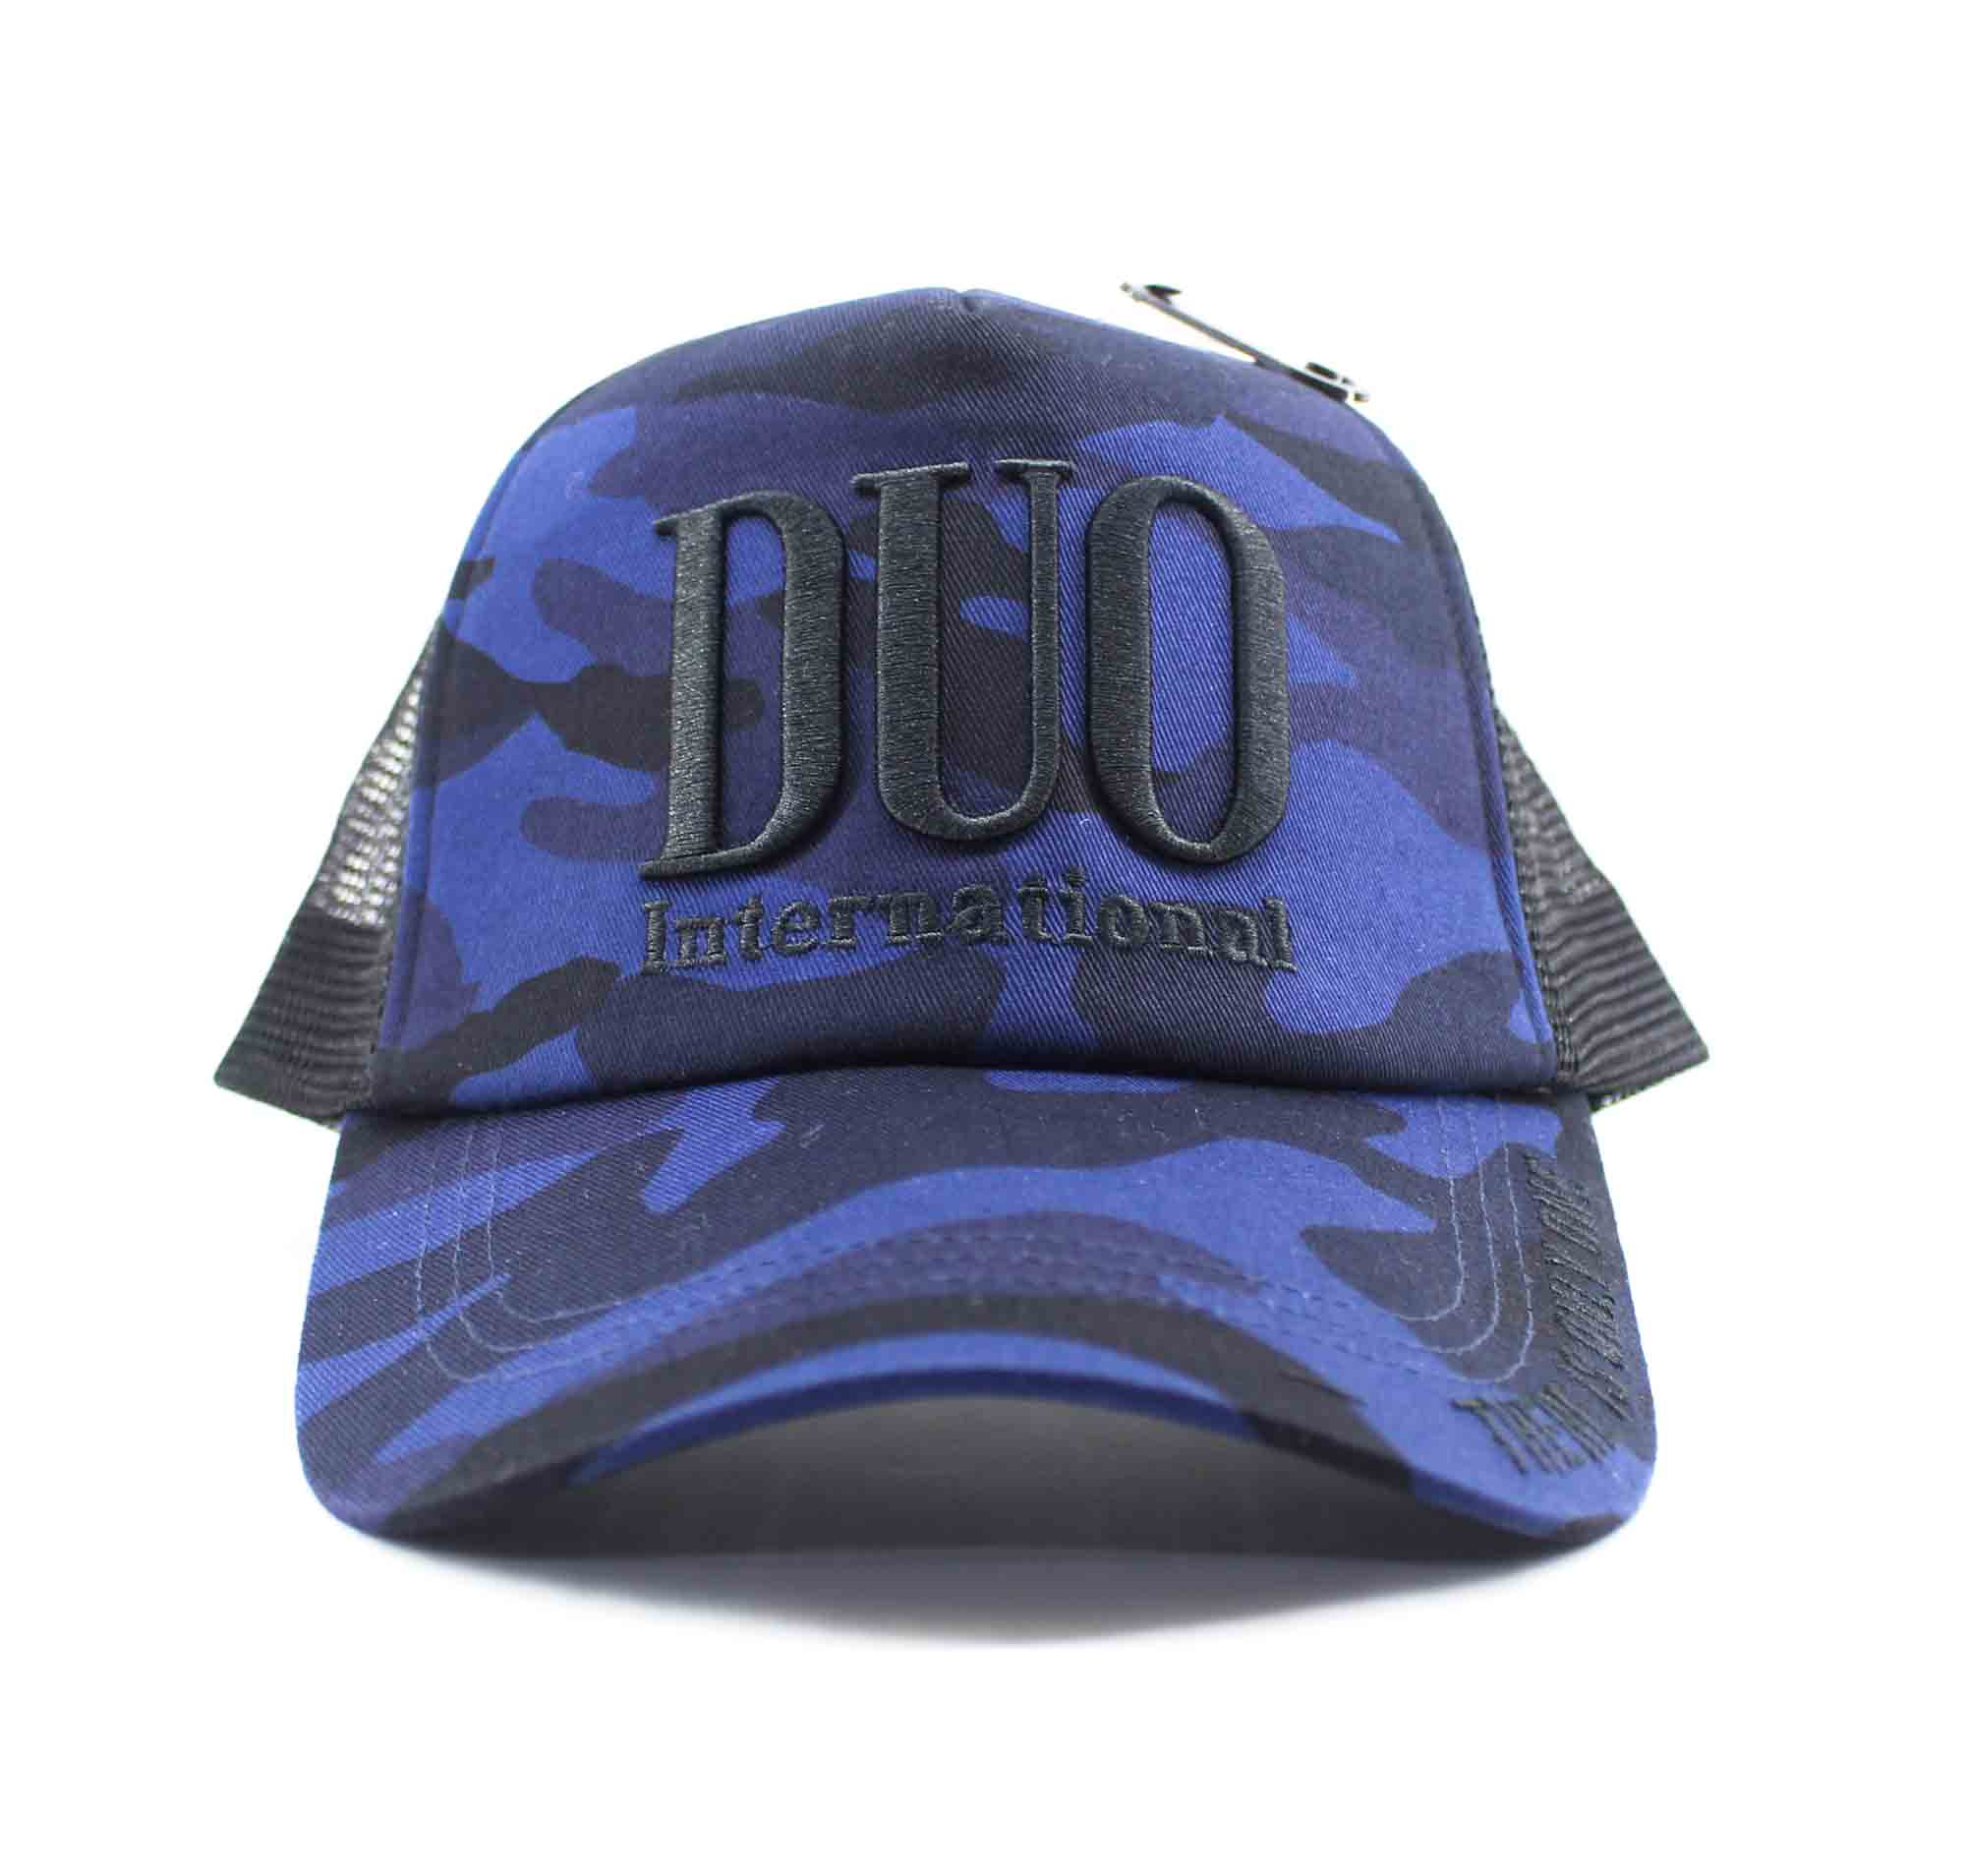 Duo Cap Trucker Cap Original Japan Free Size Blue Camo (8012)